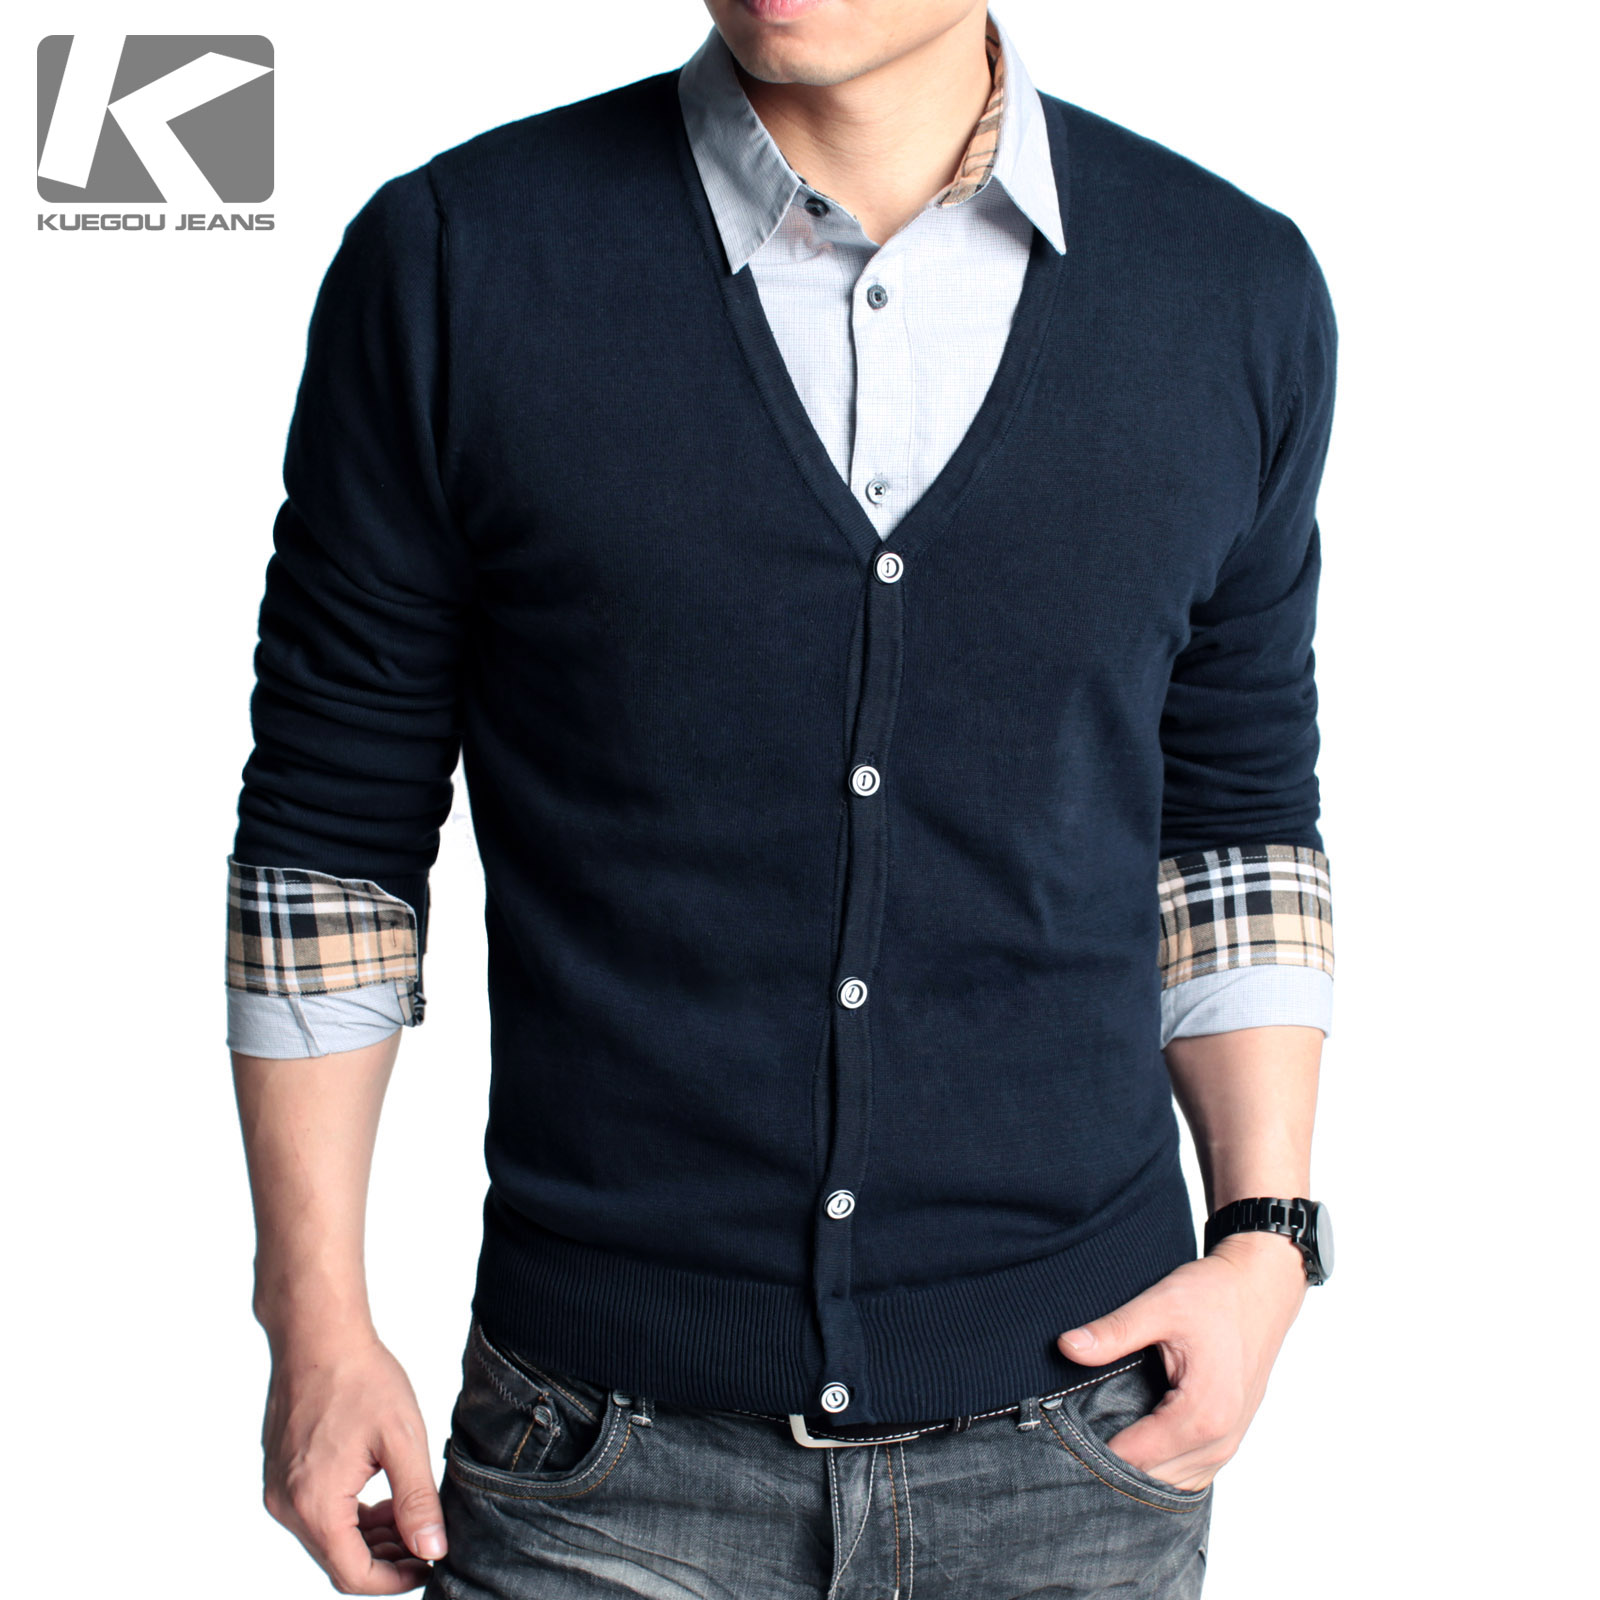 Hot Selling Men's Sweater Fashion Cardigan 100% Cotton Slim Solid ...